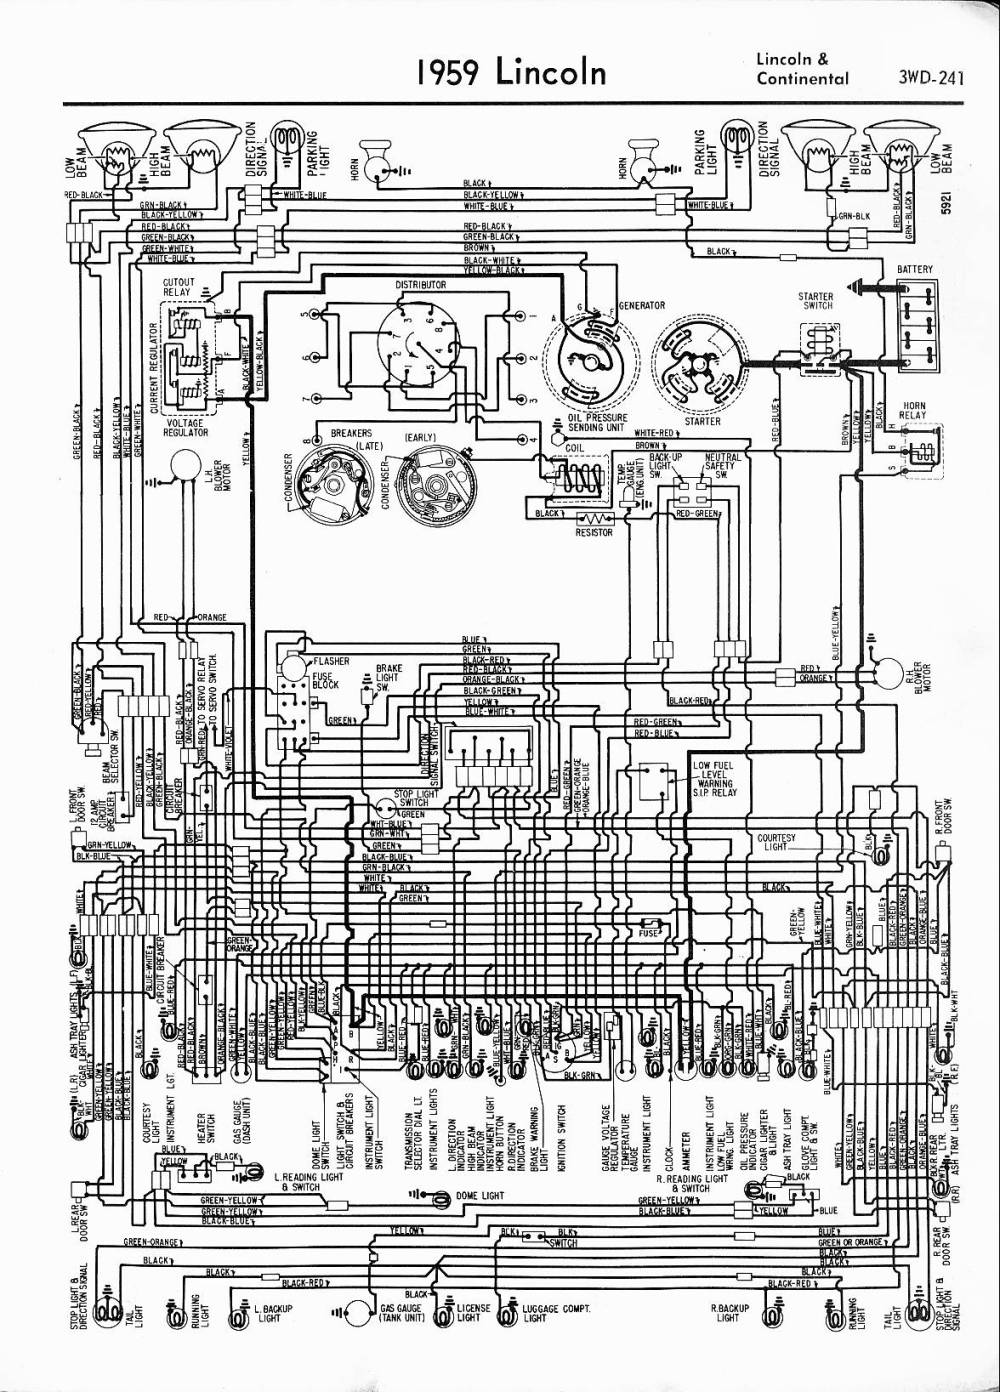 medium resolution of 1969 lincoln continental wiring diagram wiring diagram todays rh 13 15 9 1813weddingbarn com 1969 lincoln continental wiring diagram 1996 lincoln